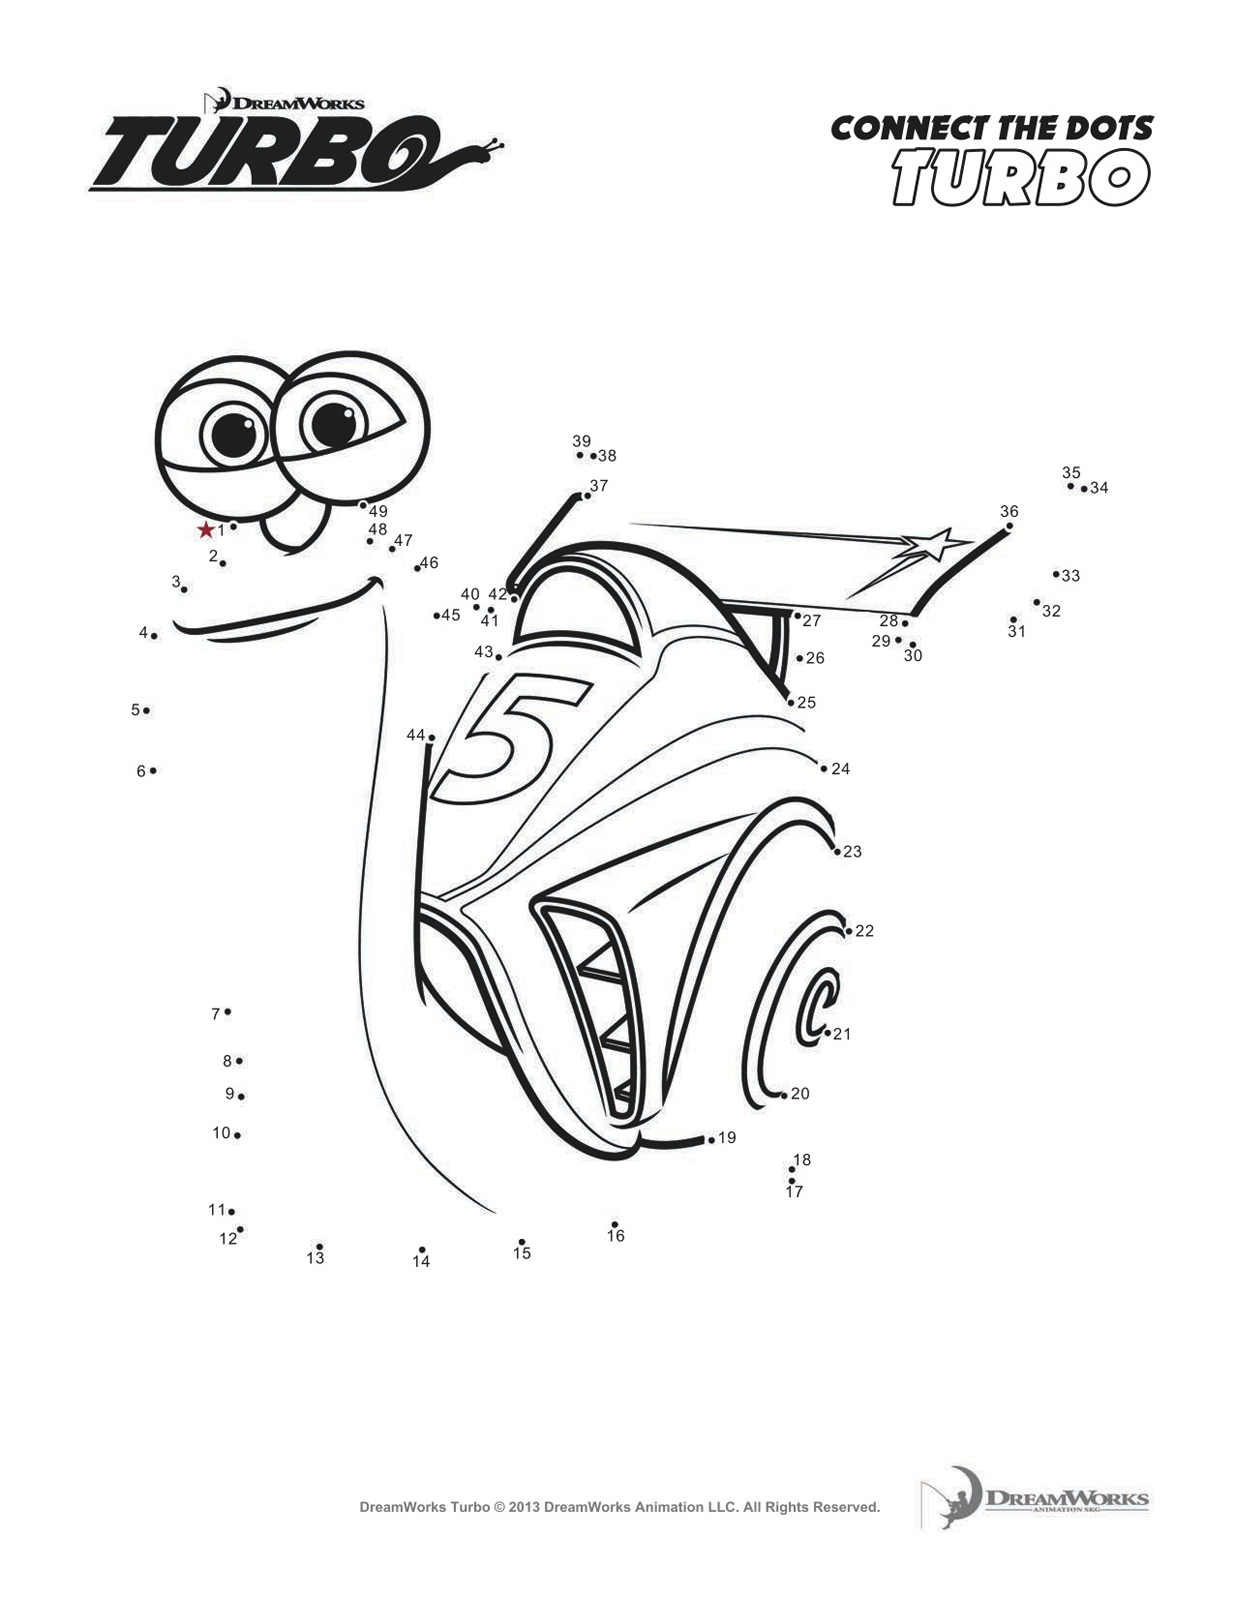 Turbo escargot 8 coloriage turbo l 39 escargot - Coloriage escargot turbo ...